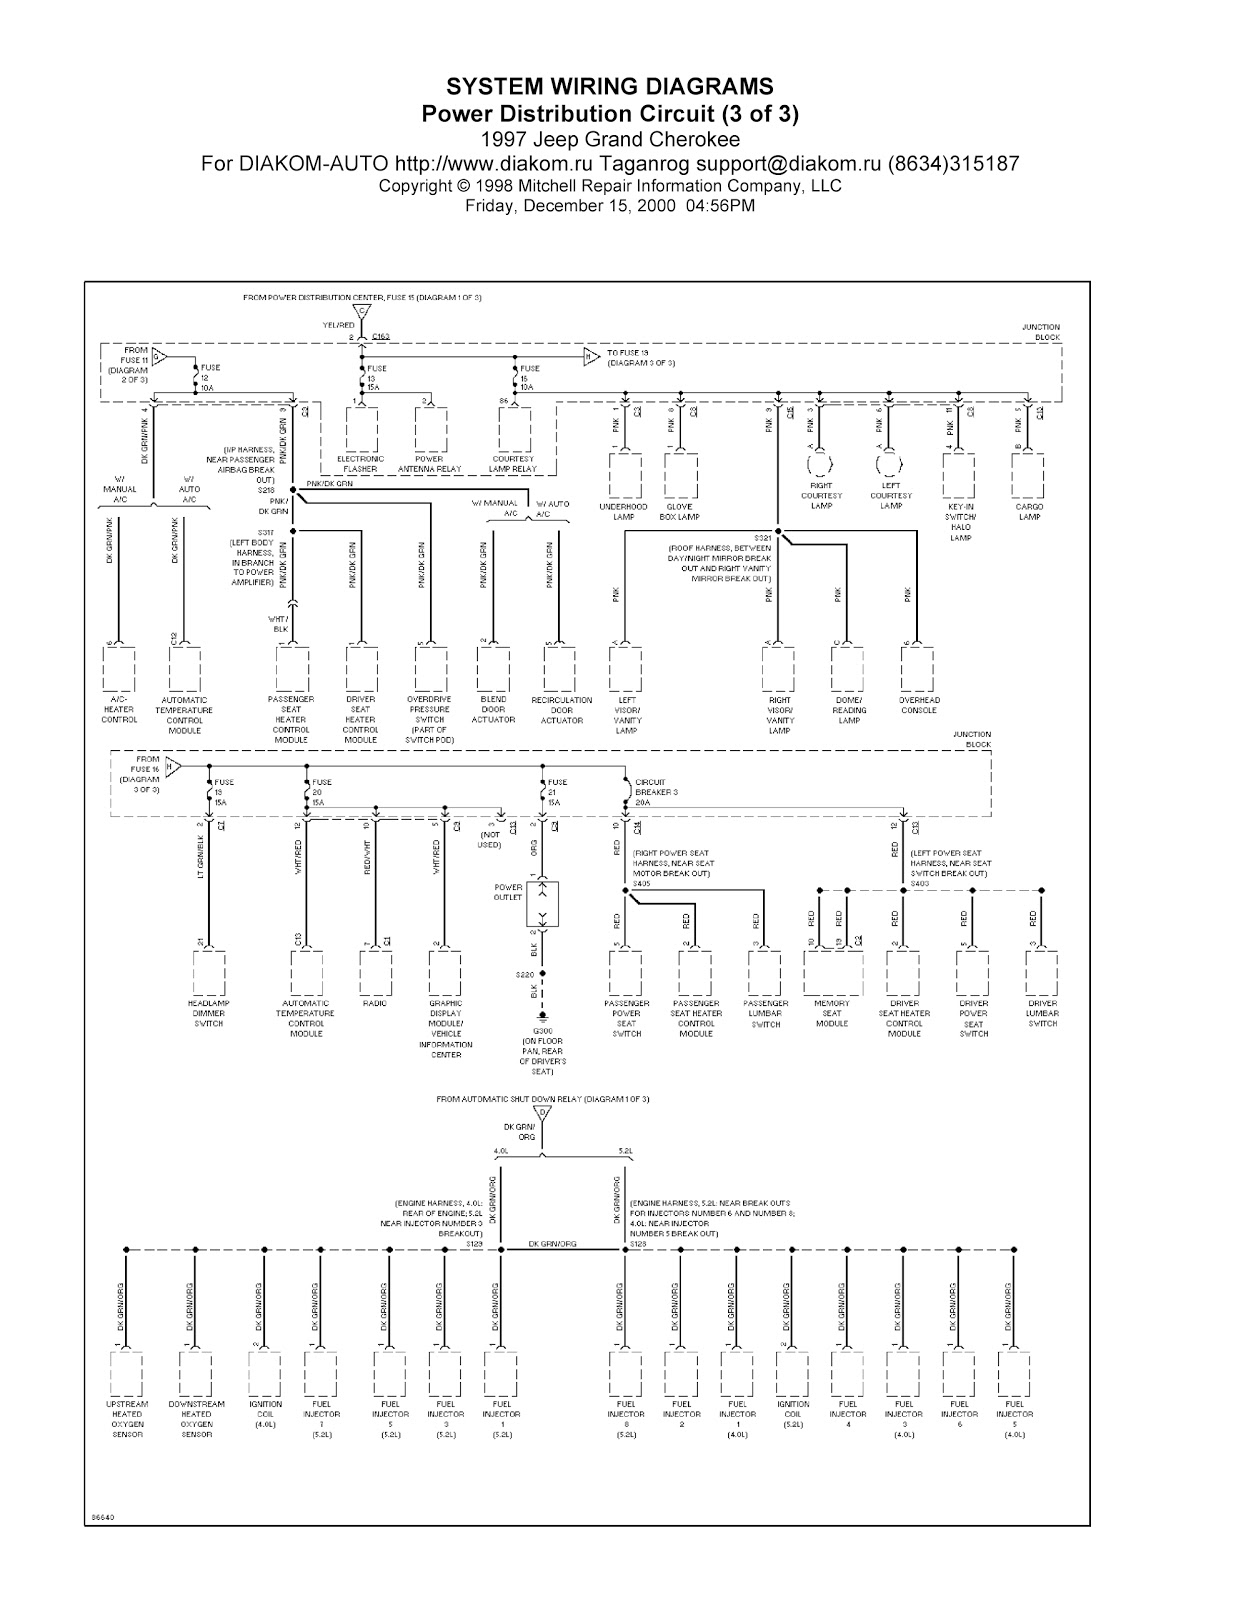 96 grand cherokee wiring diagram deforestation and soil erosion jeep coil get free image about